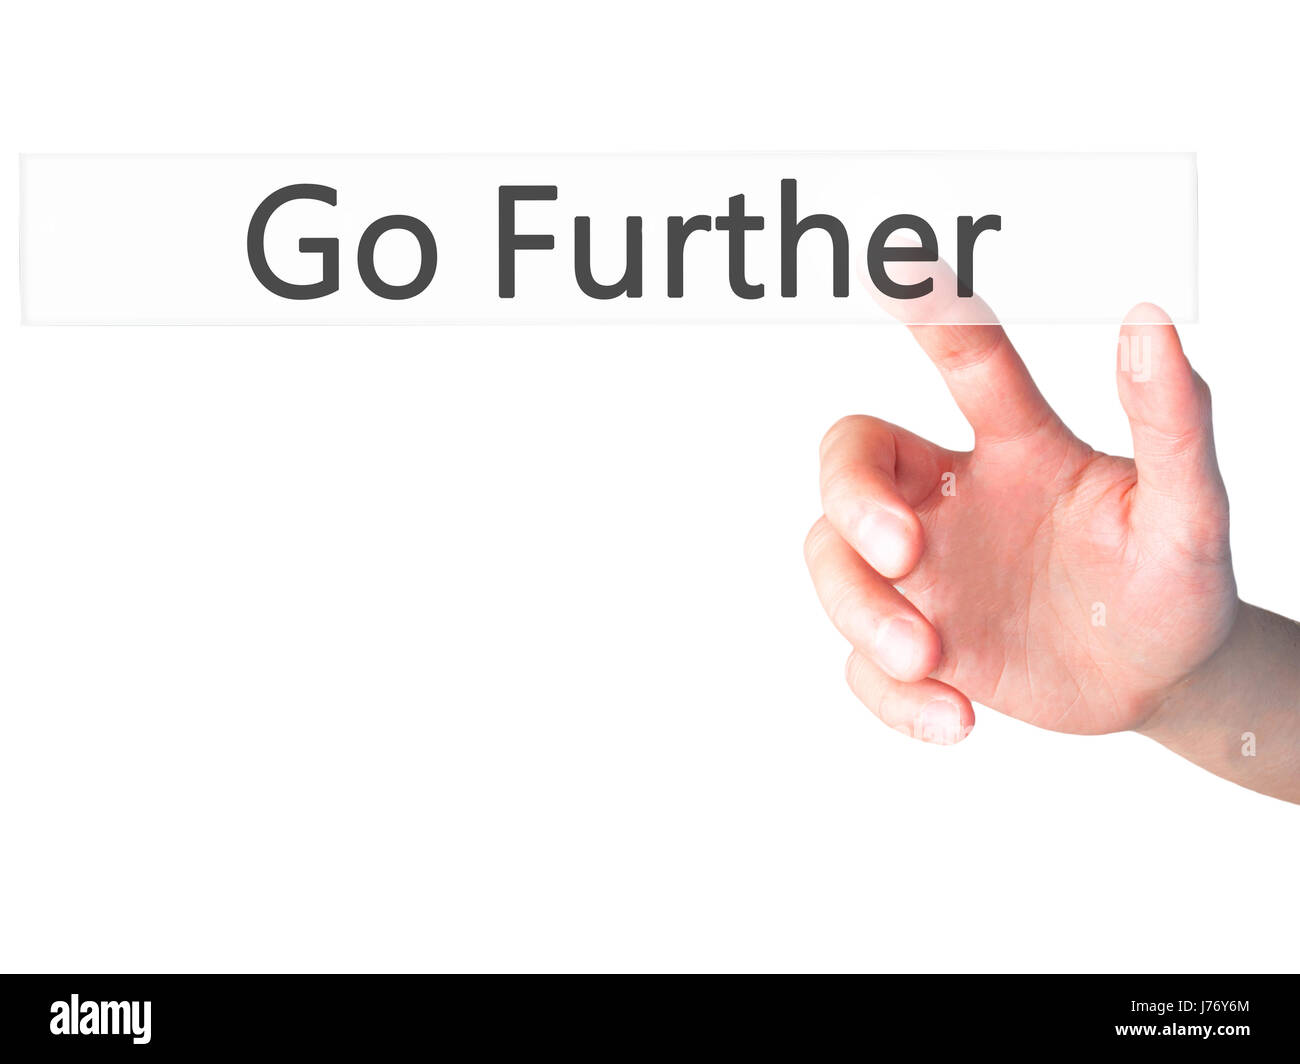 Go Further - Hand pressing a button on blurred background concept . Business, technology, internet concept. Stock - Stock Image